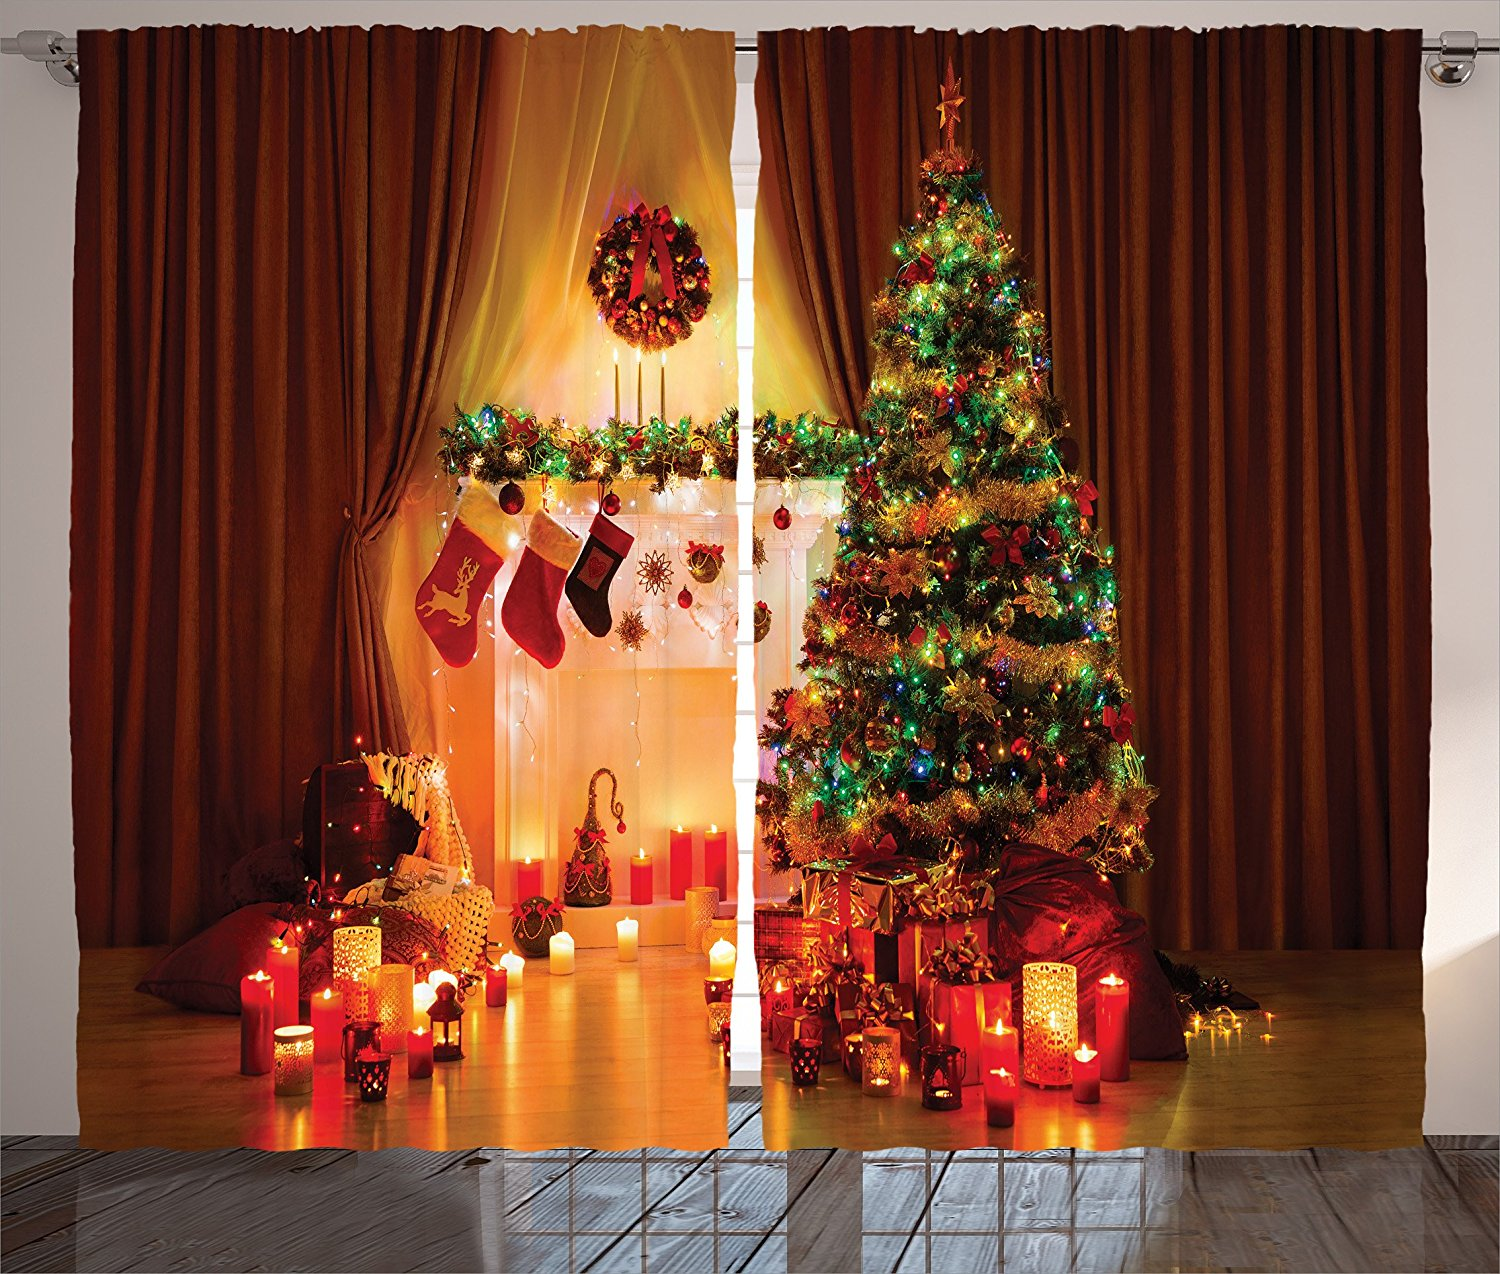 Top Christmas Curtains To Decorate Home - Holidays Blog ...